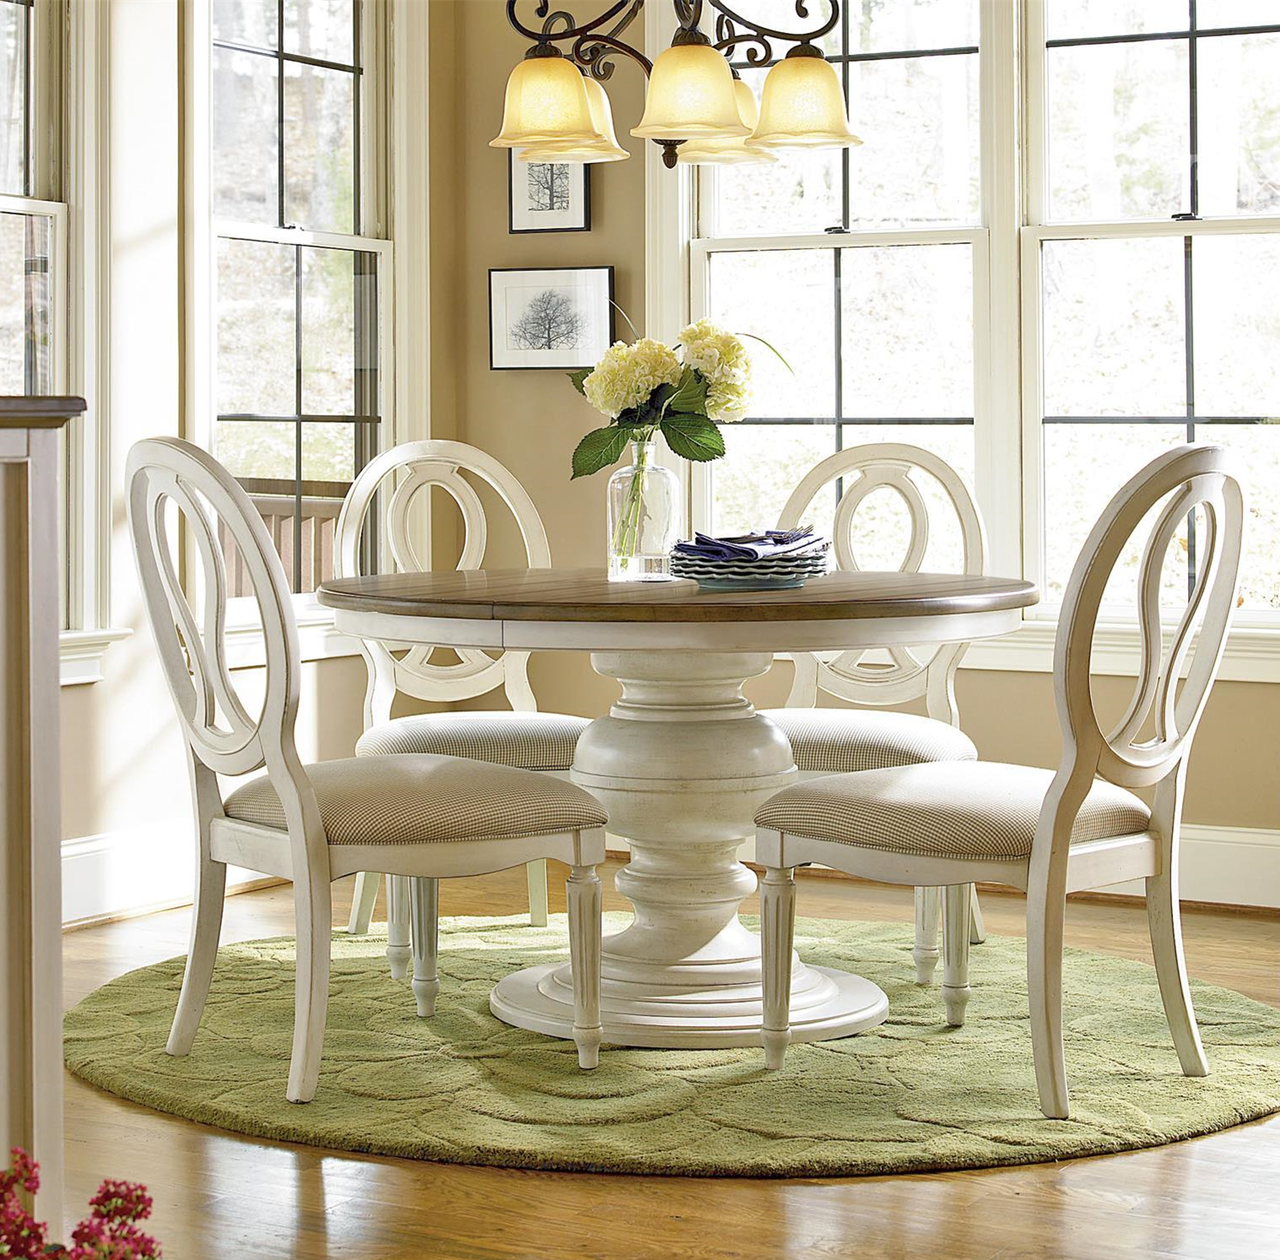 Country-Chic Maple Wood 5 Piece Round White Dining Table Set  sc 1 st  Zin Home & Country-Chic 5 Piece Round White Dining Table Set | Zin Home